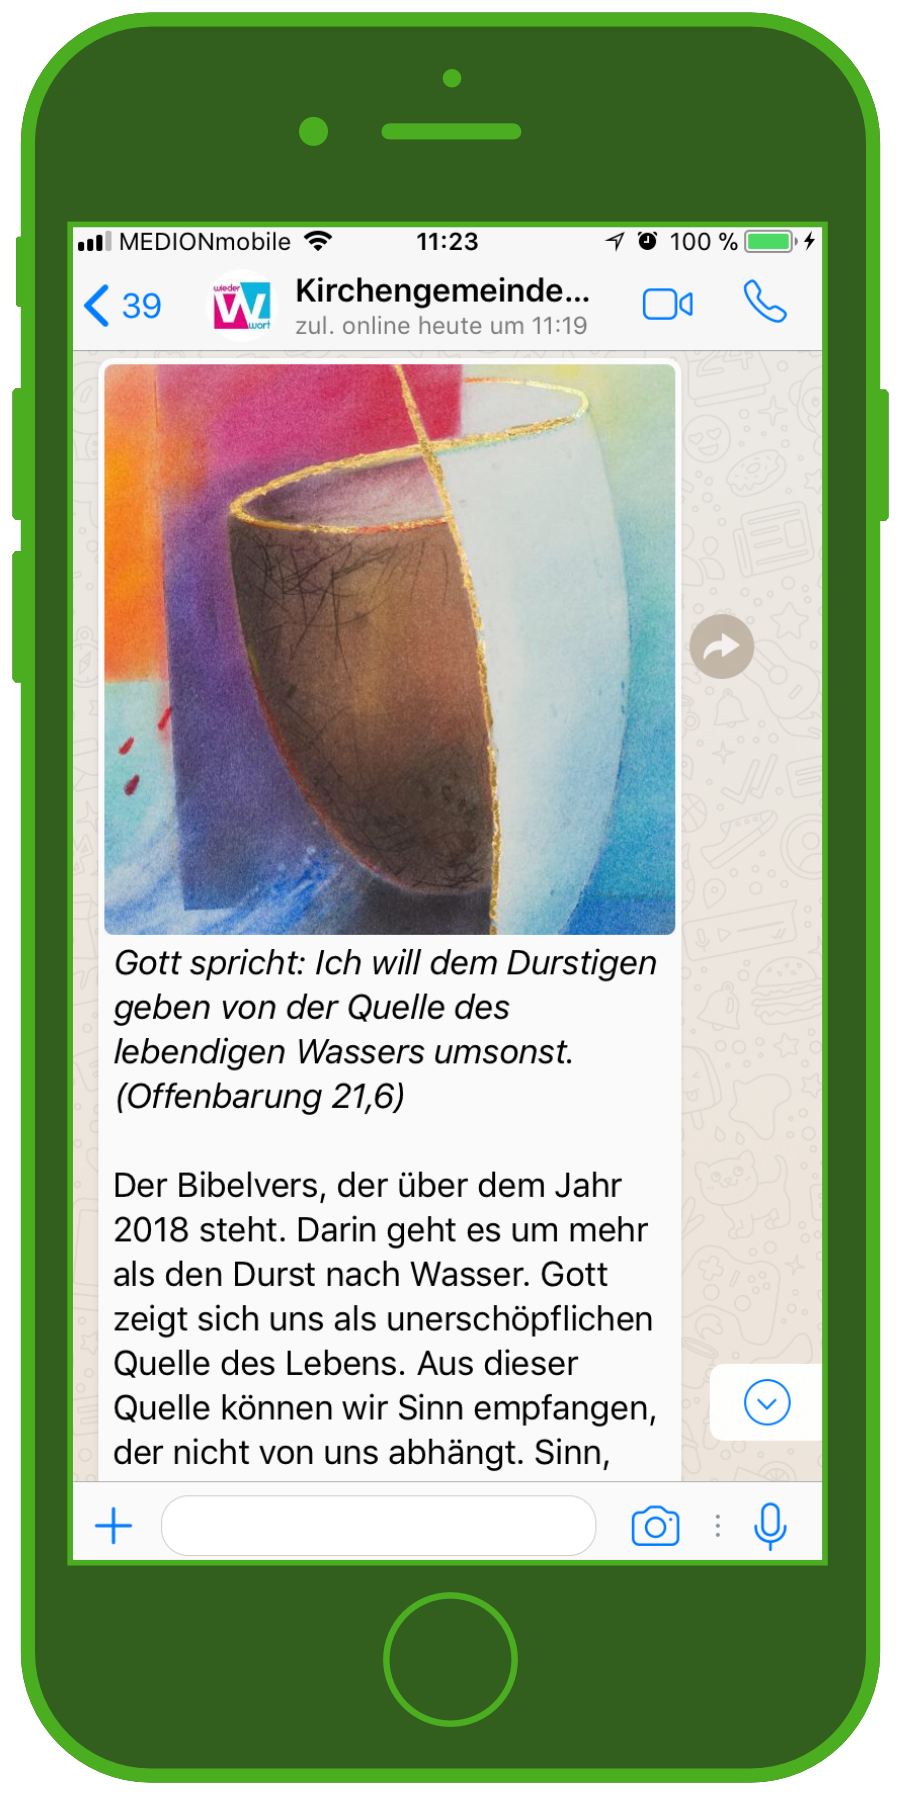 device-kirche-religion-whatsapp-newsletter-evangelisch